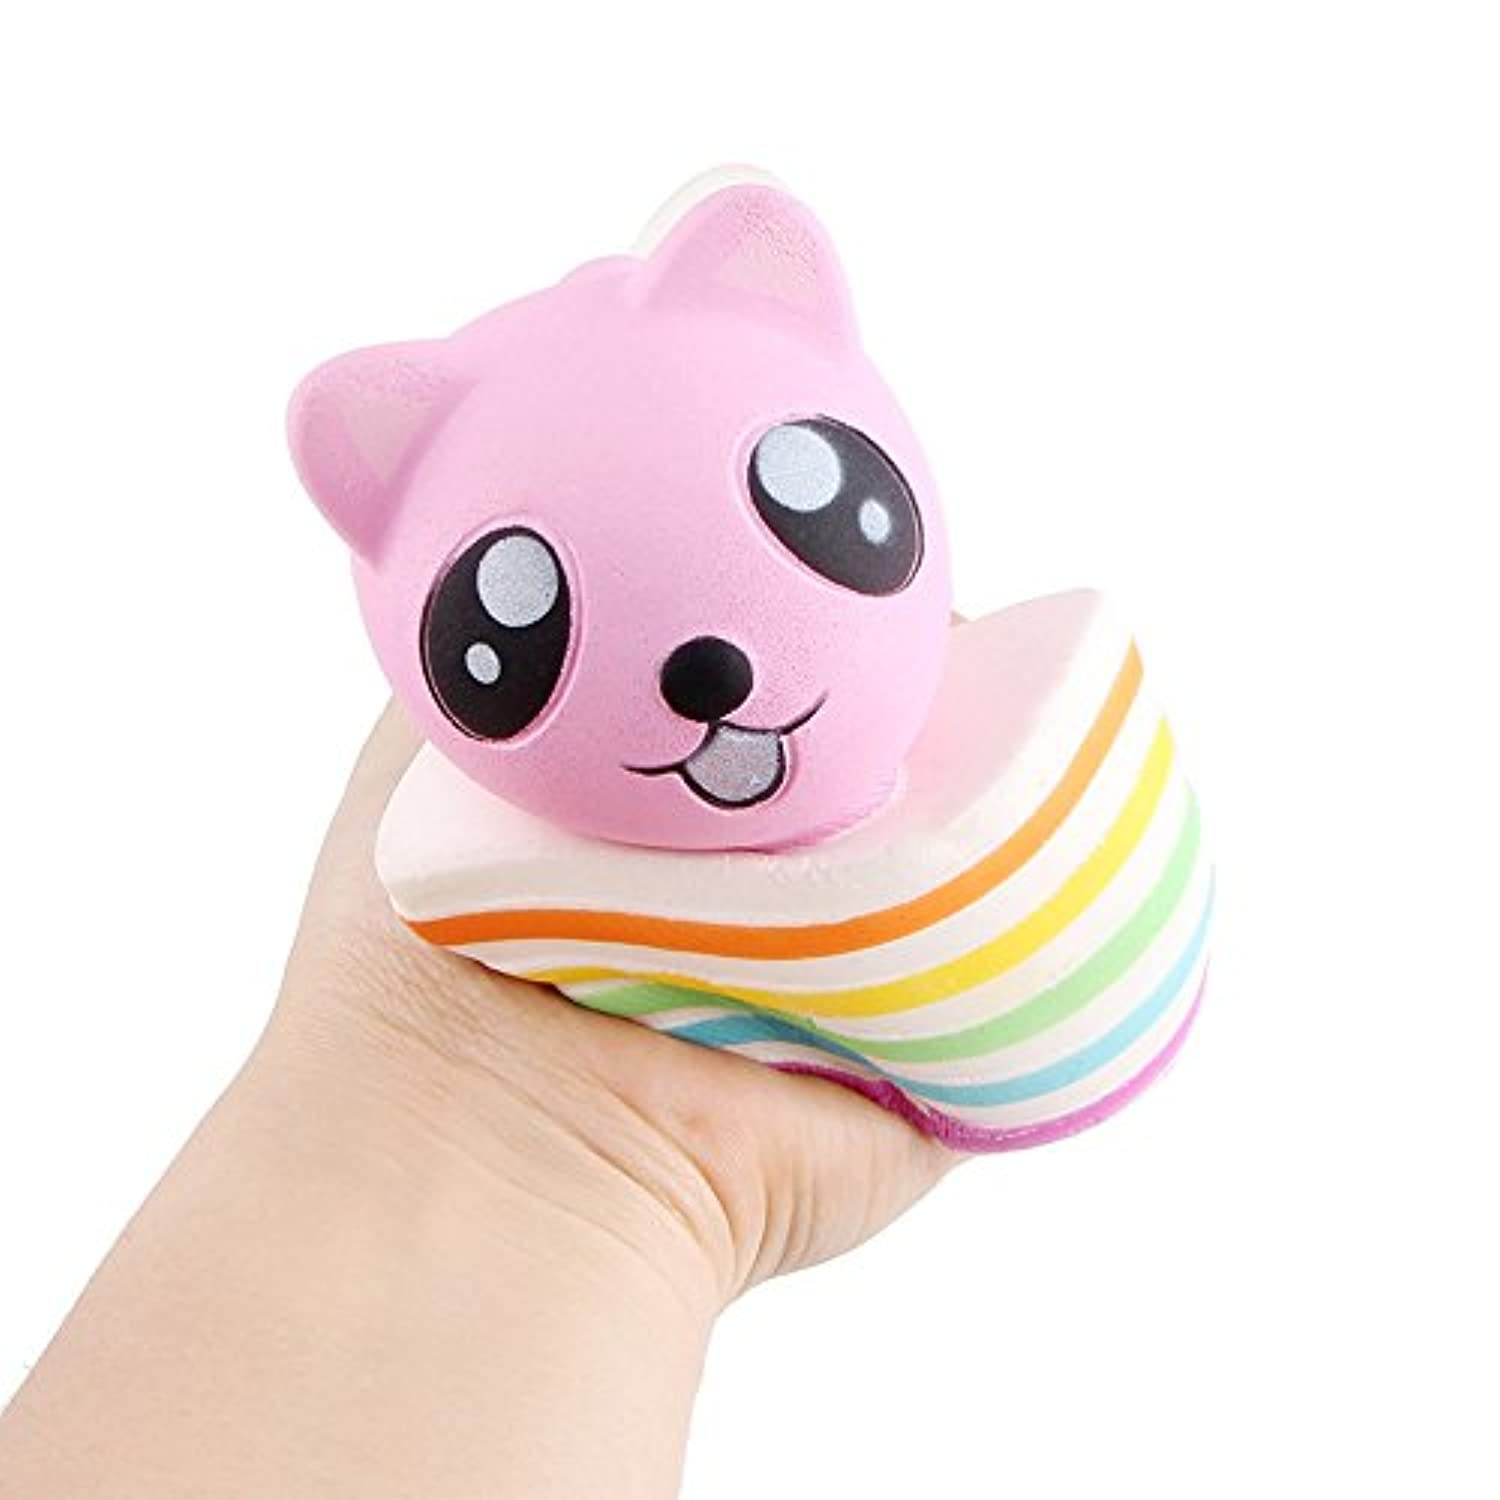 frunalte Slow Rising Squishiesおもちゃ香りつきSqueeze BearケーキStress ReliefトイNice Gift For Kids &大人Squeezing for Kids子供大人Toddlers Funny Bearケーキデザイン A ピンク ZYJ-123